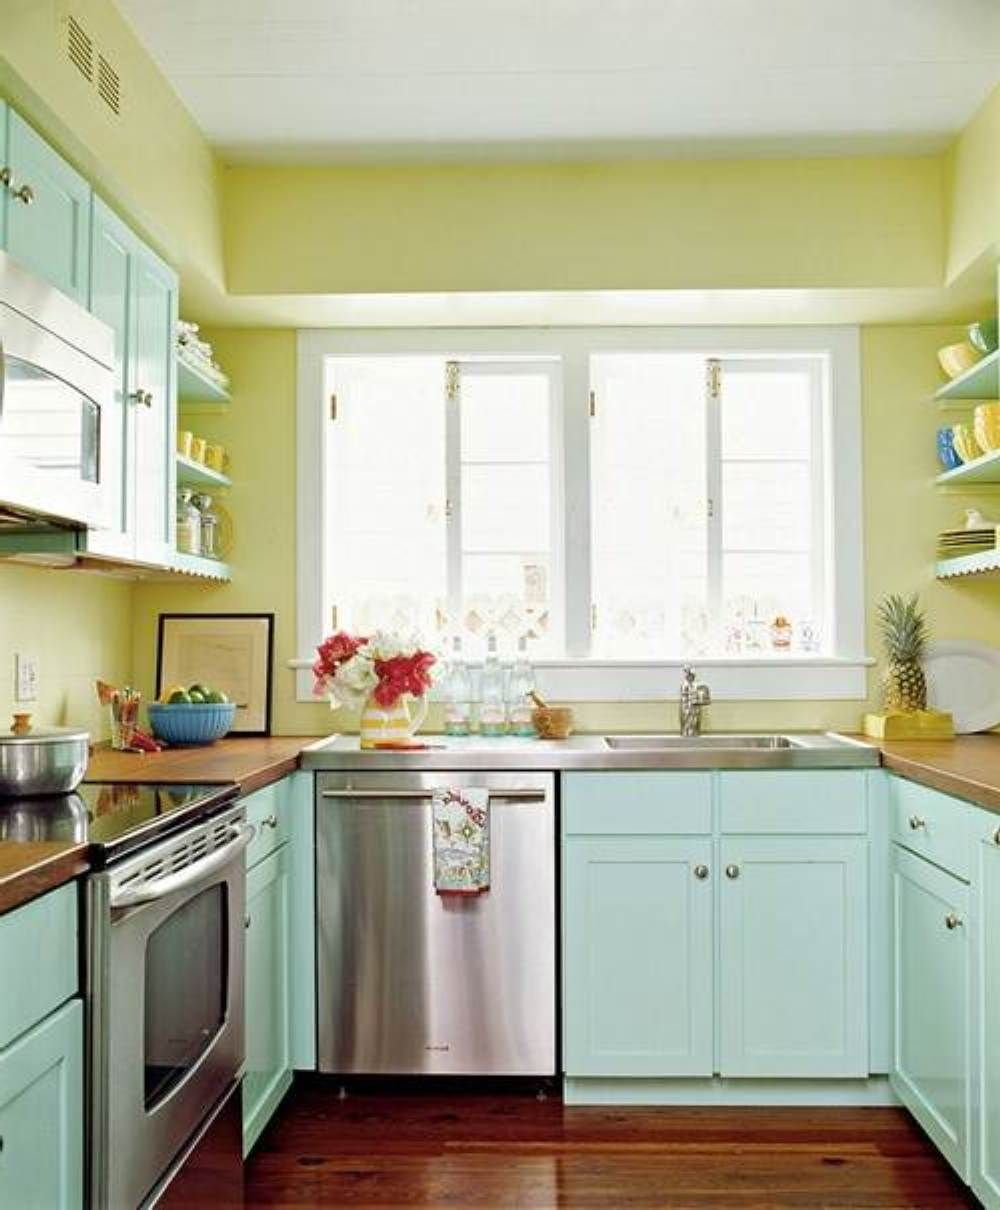 Best Paint Colors For Kitchen small kitchen design ideas | wall colors, kitchens and walls